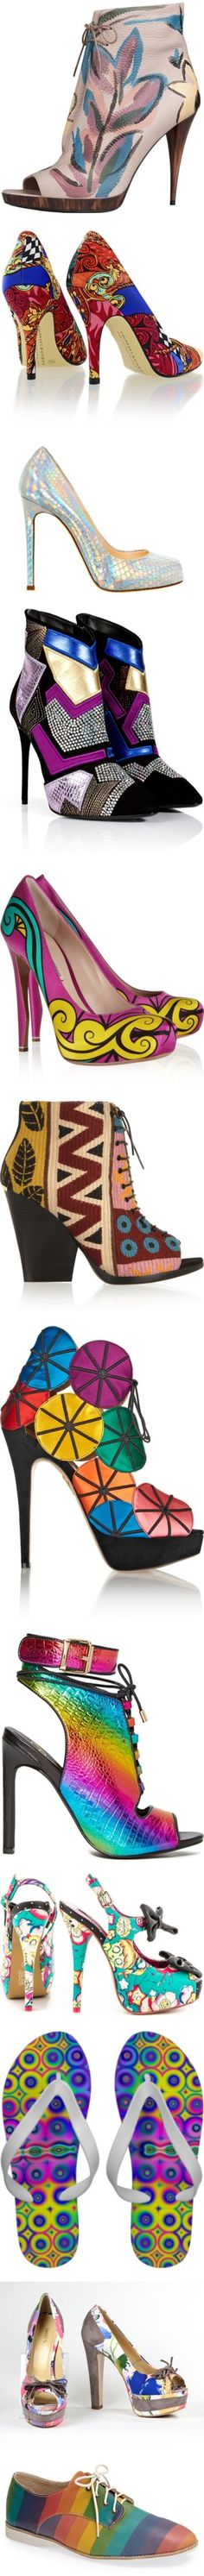 * SHOES: RAINBOW & MULTICOLORED * by artist4god-rose-santuci-sofranko on Polyvore featuring polyvore, fashion, shoes, boots, ankle booties, heels, burberry, ankle boots, platform ankle boots, heeled ankle boots, peep toe bootie, short leather boots, leather peep toe booties, pumps, chinese laundry pumps, multicolor pumps, high heel shoes, satin pumps, colorful shoes, short black boots, black boots, black suede ankle booties, black booties, high heel ankle boots, hidden platform pumps, square…